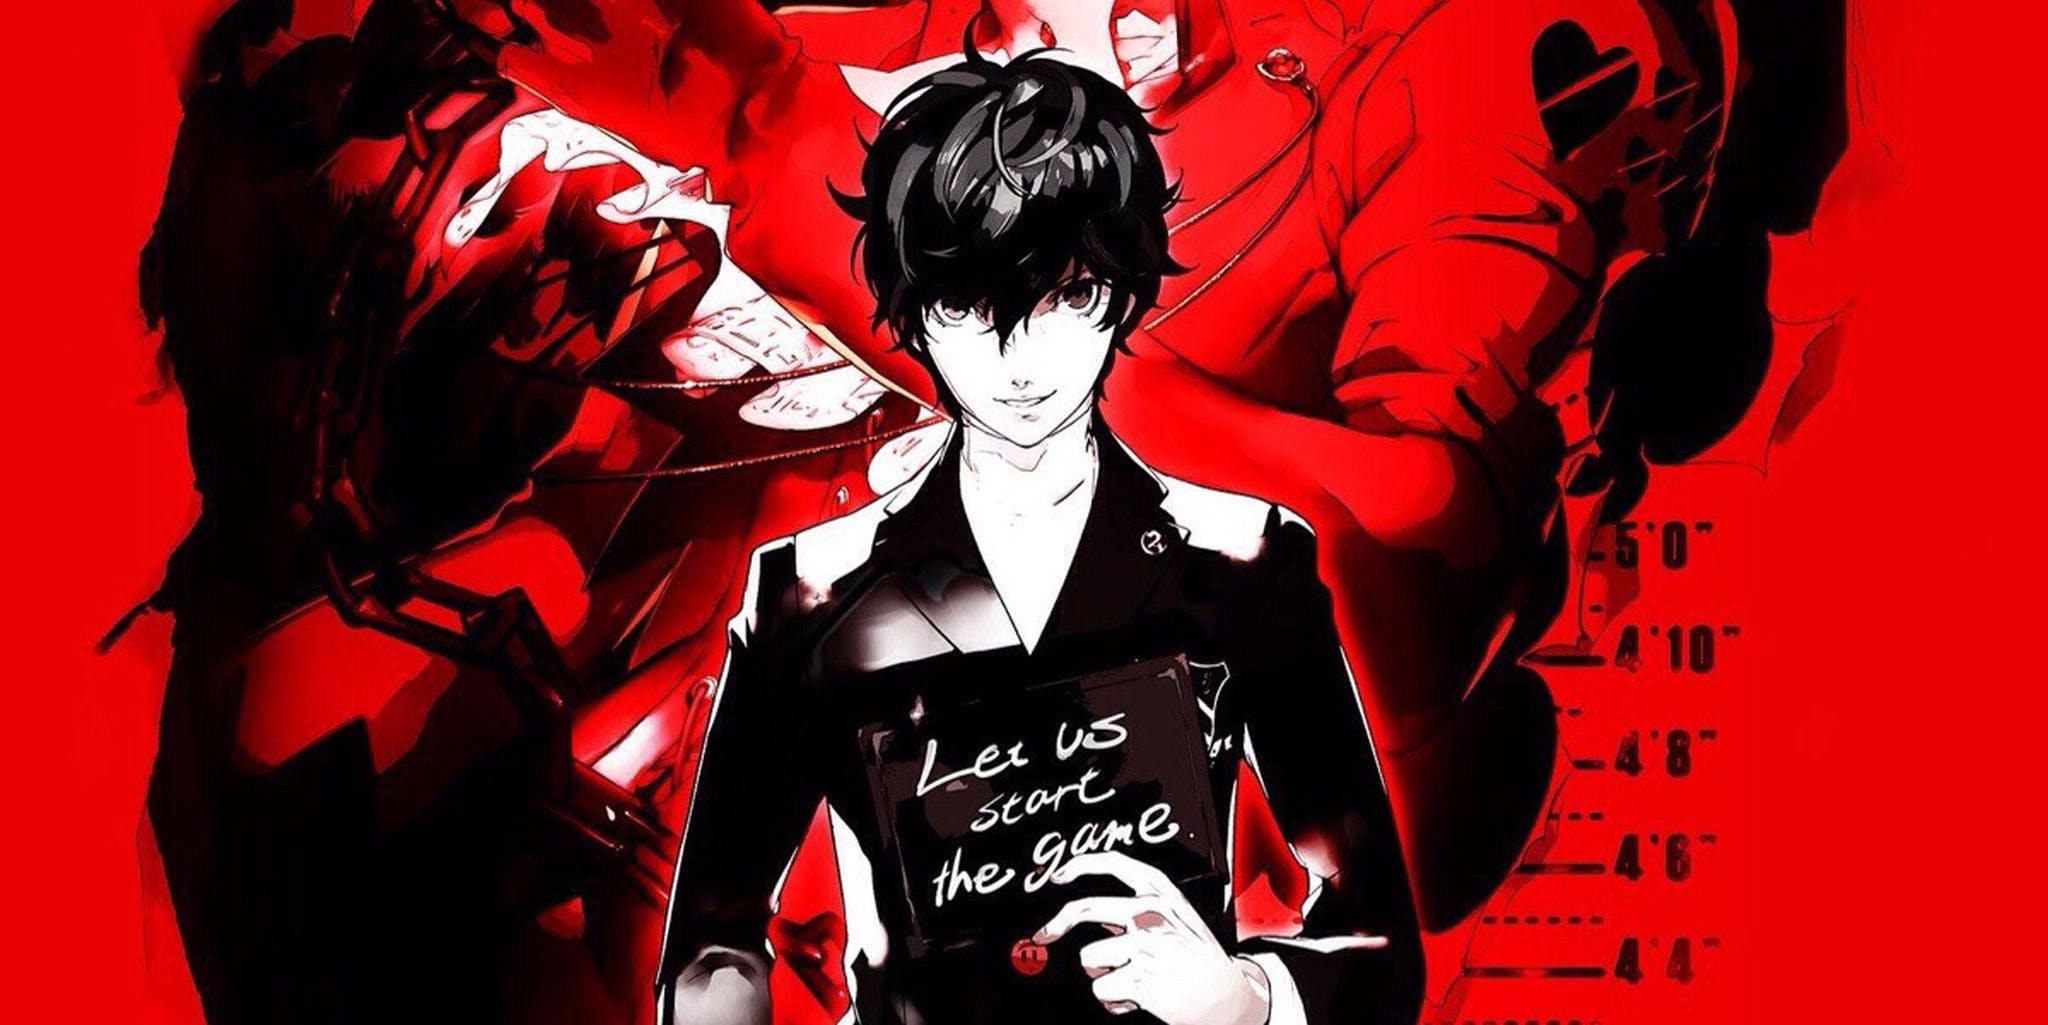 best video games 2017 : Persona 5